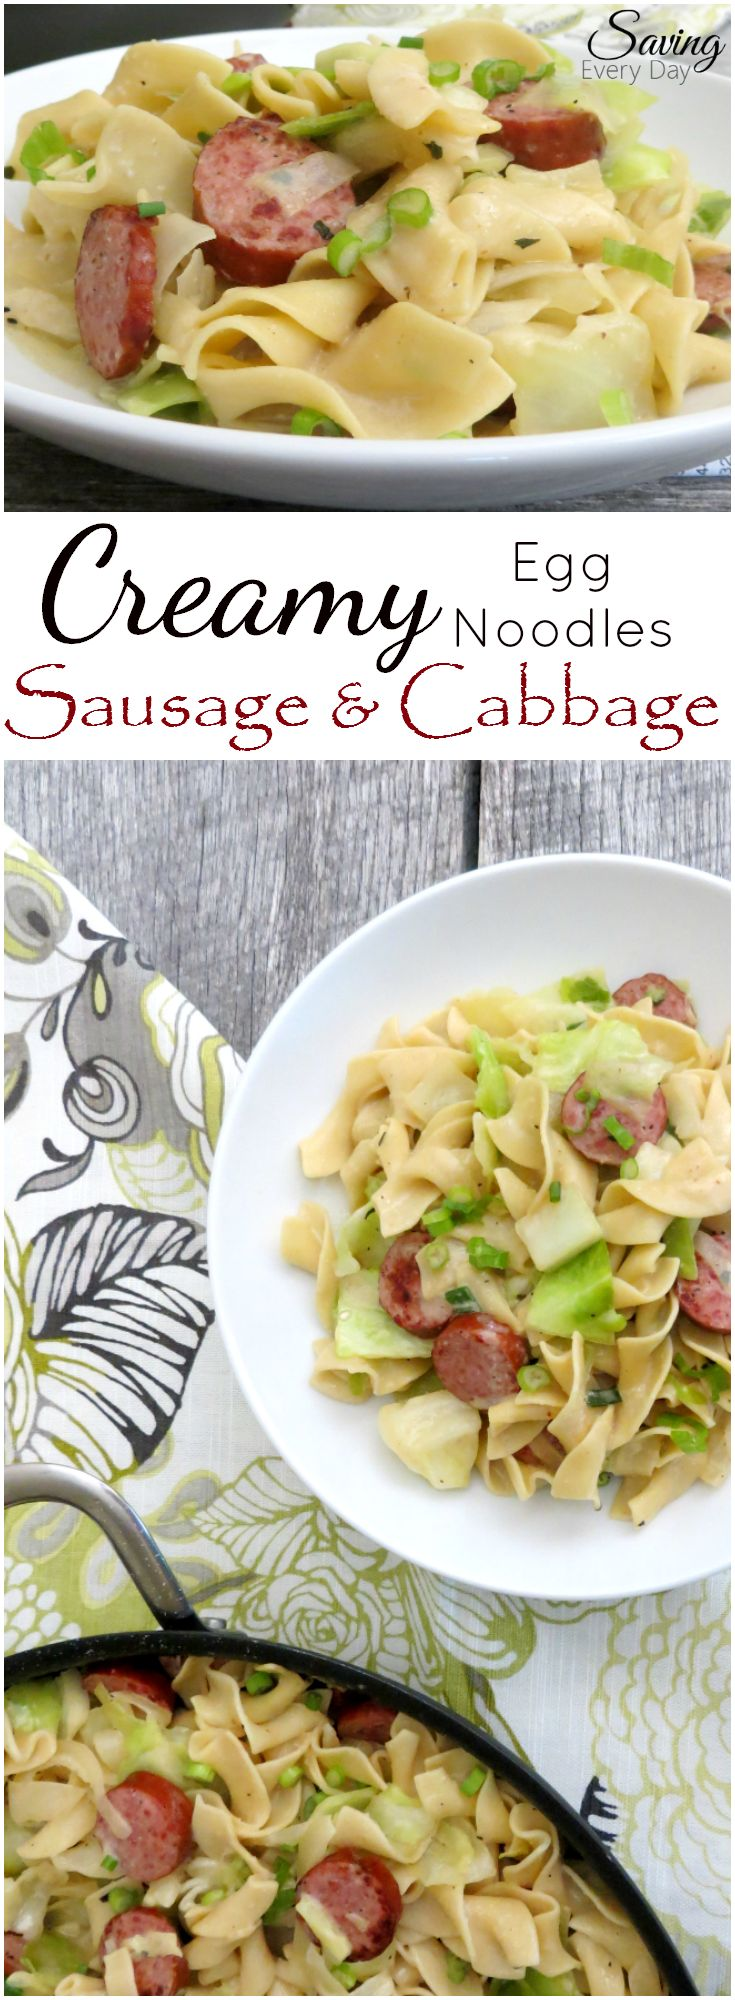 Creamy egg noodles and cabbage with Hillshire Farm Smoked Turkey Smoked Sausage. Quick, healthy and delicious! #HillshireSausage